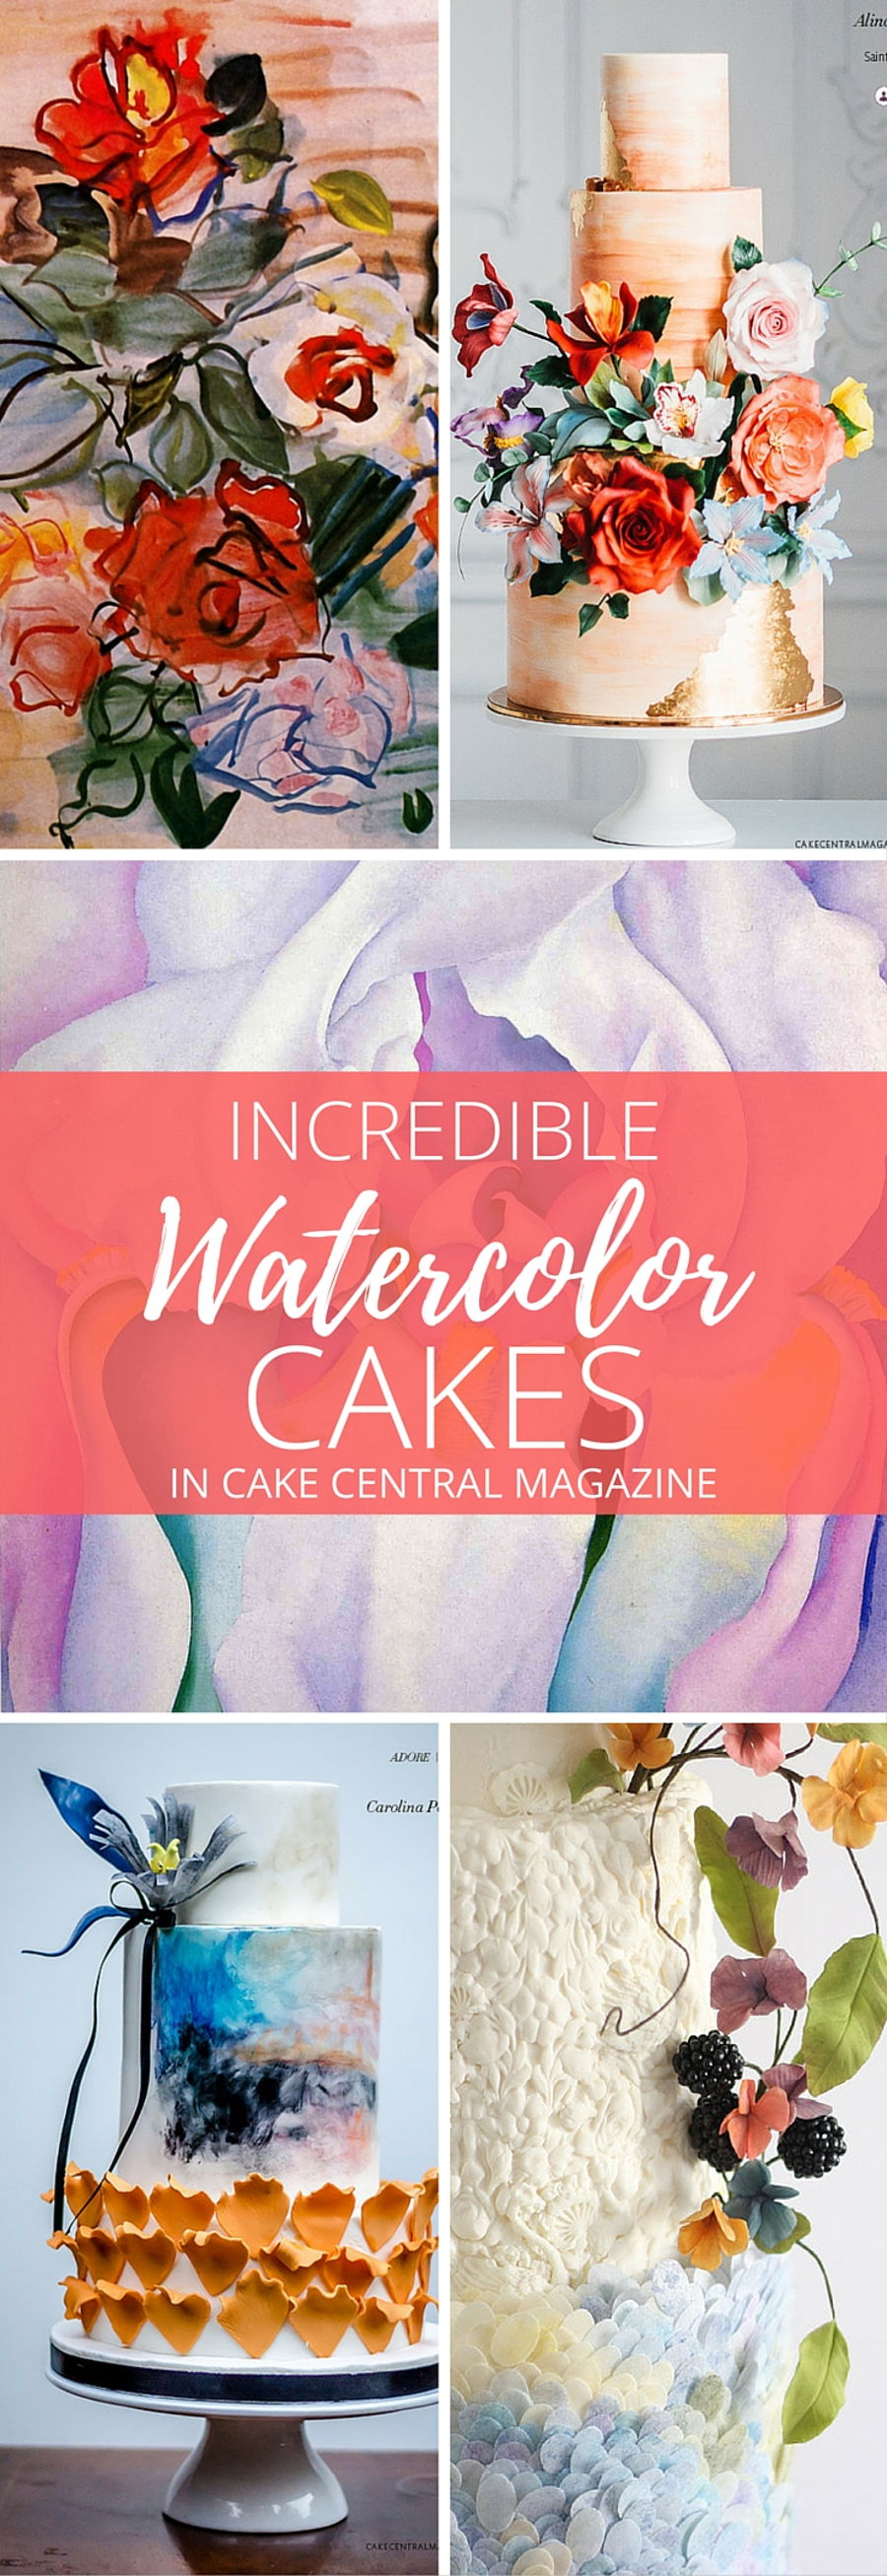 Water Color Wedding Cakes In Cake Central Magazine